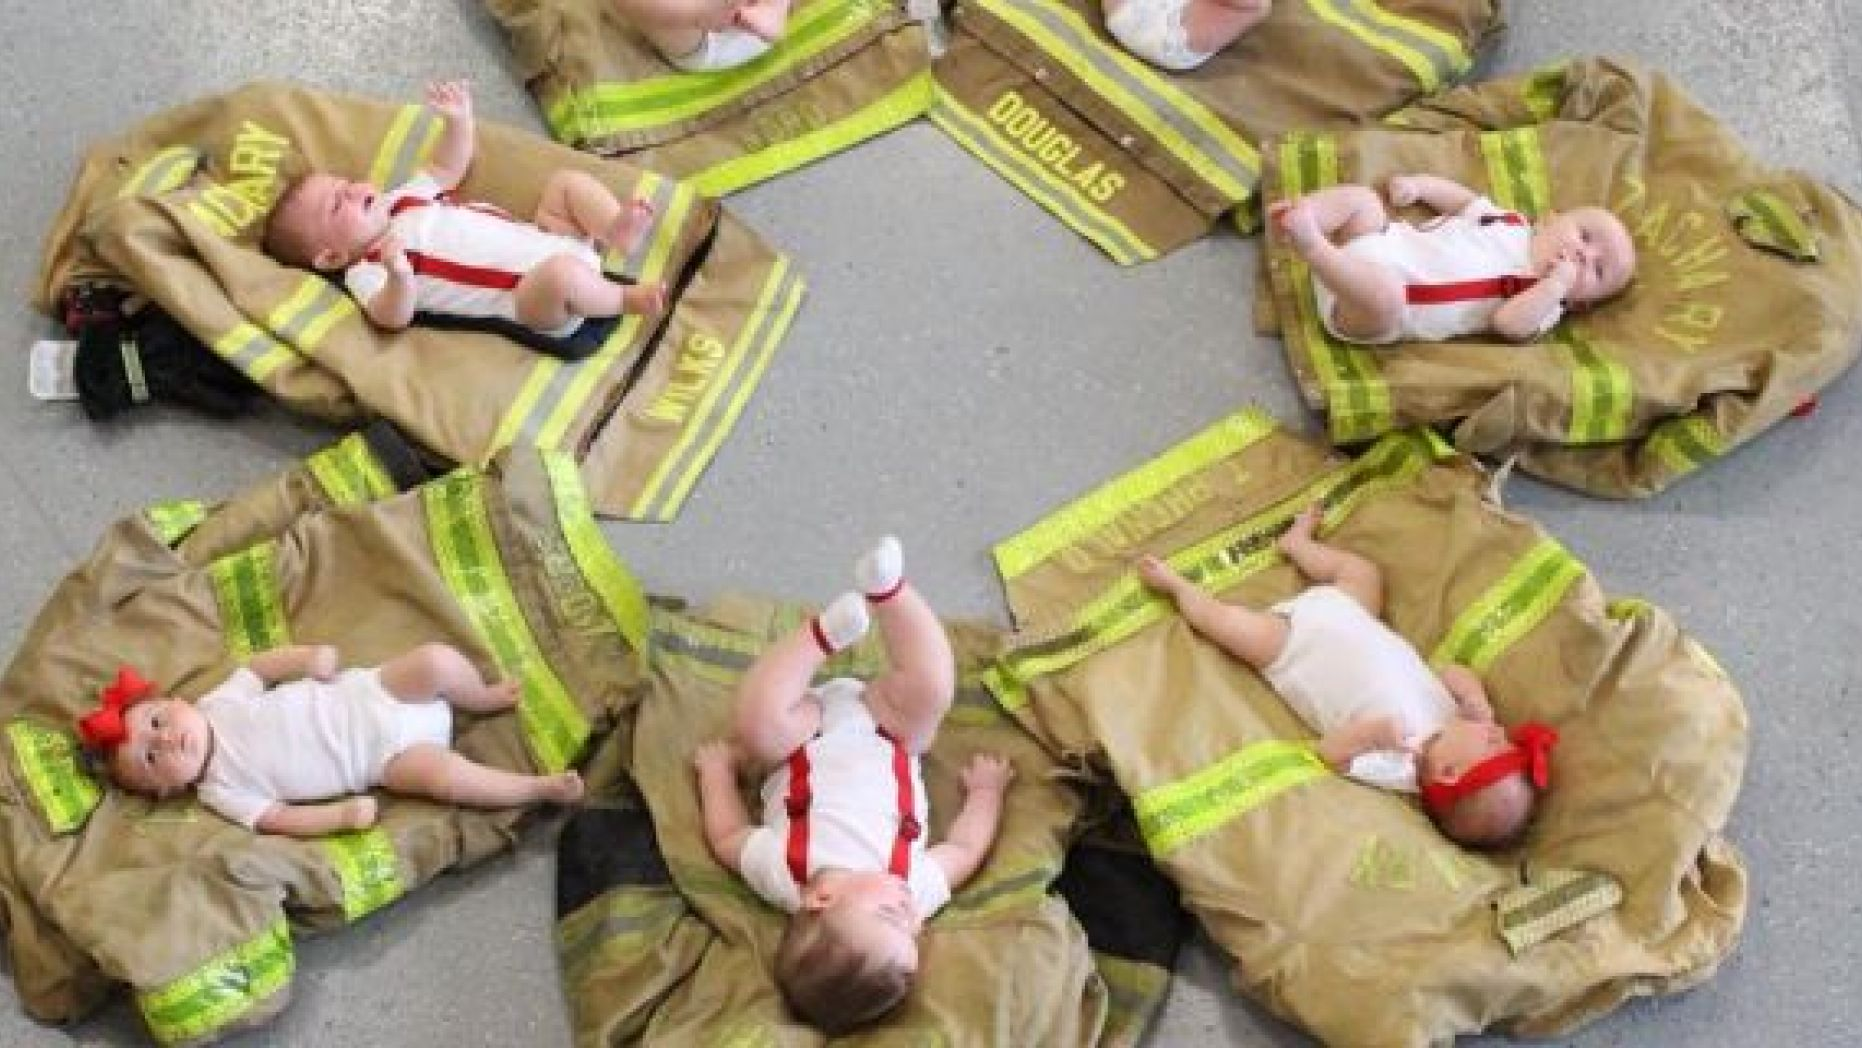 Louisiana's Zachary Fire Department announced its crew welcomed seven babies during the last 11 months.